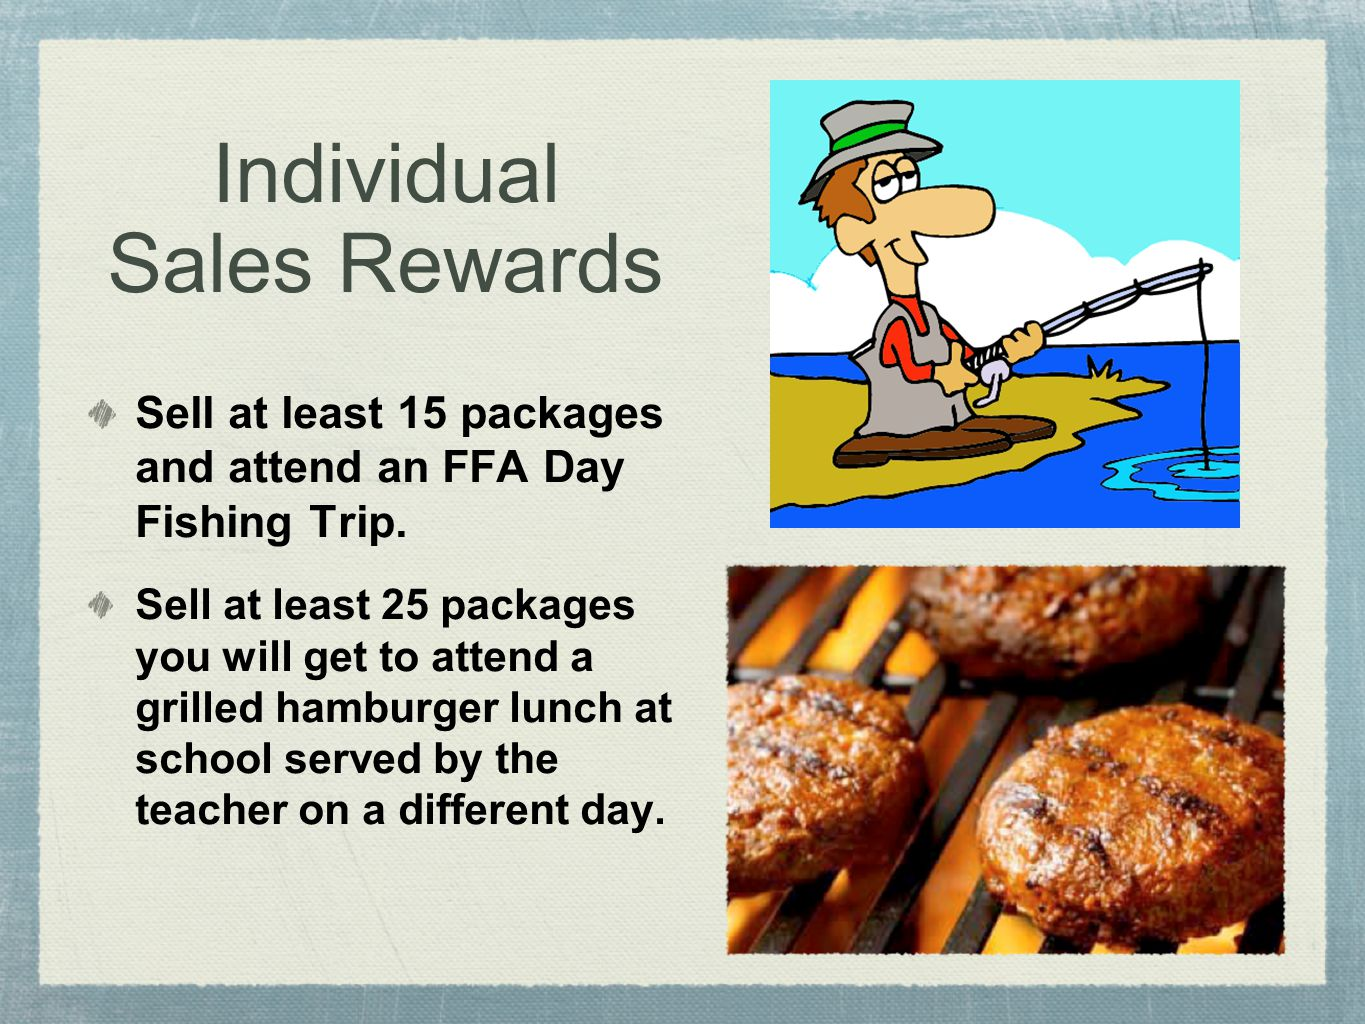 Individual Sales Rewards Sell at least 15 packages and attend an FFA Day Fishing Trip. Sell at least 25 packages you will get to attend a grilled hamb